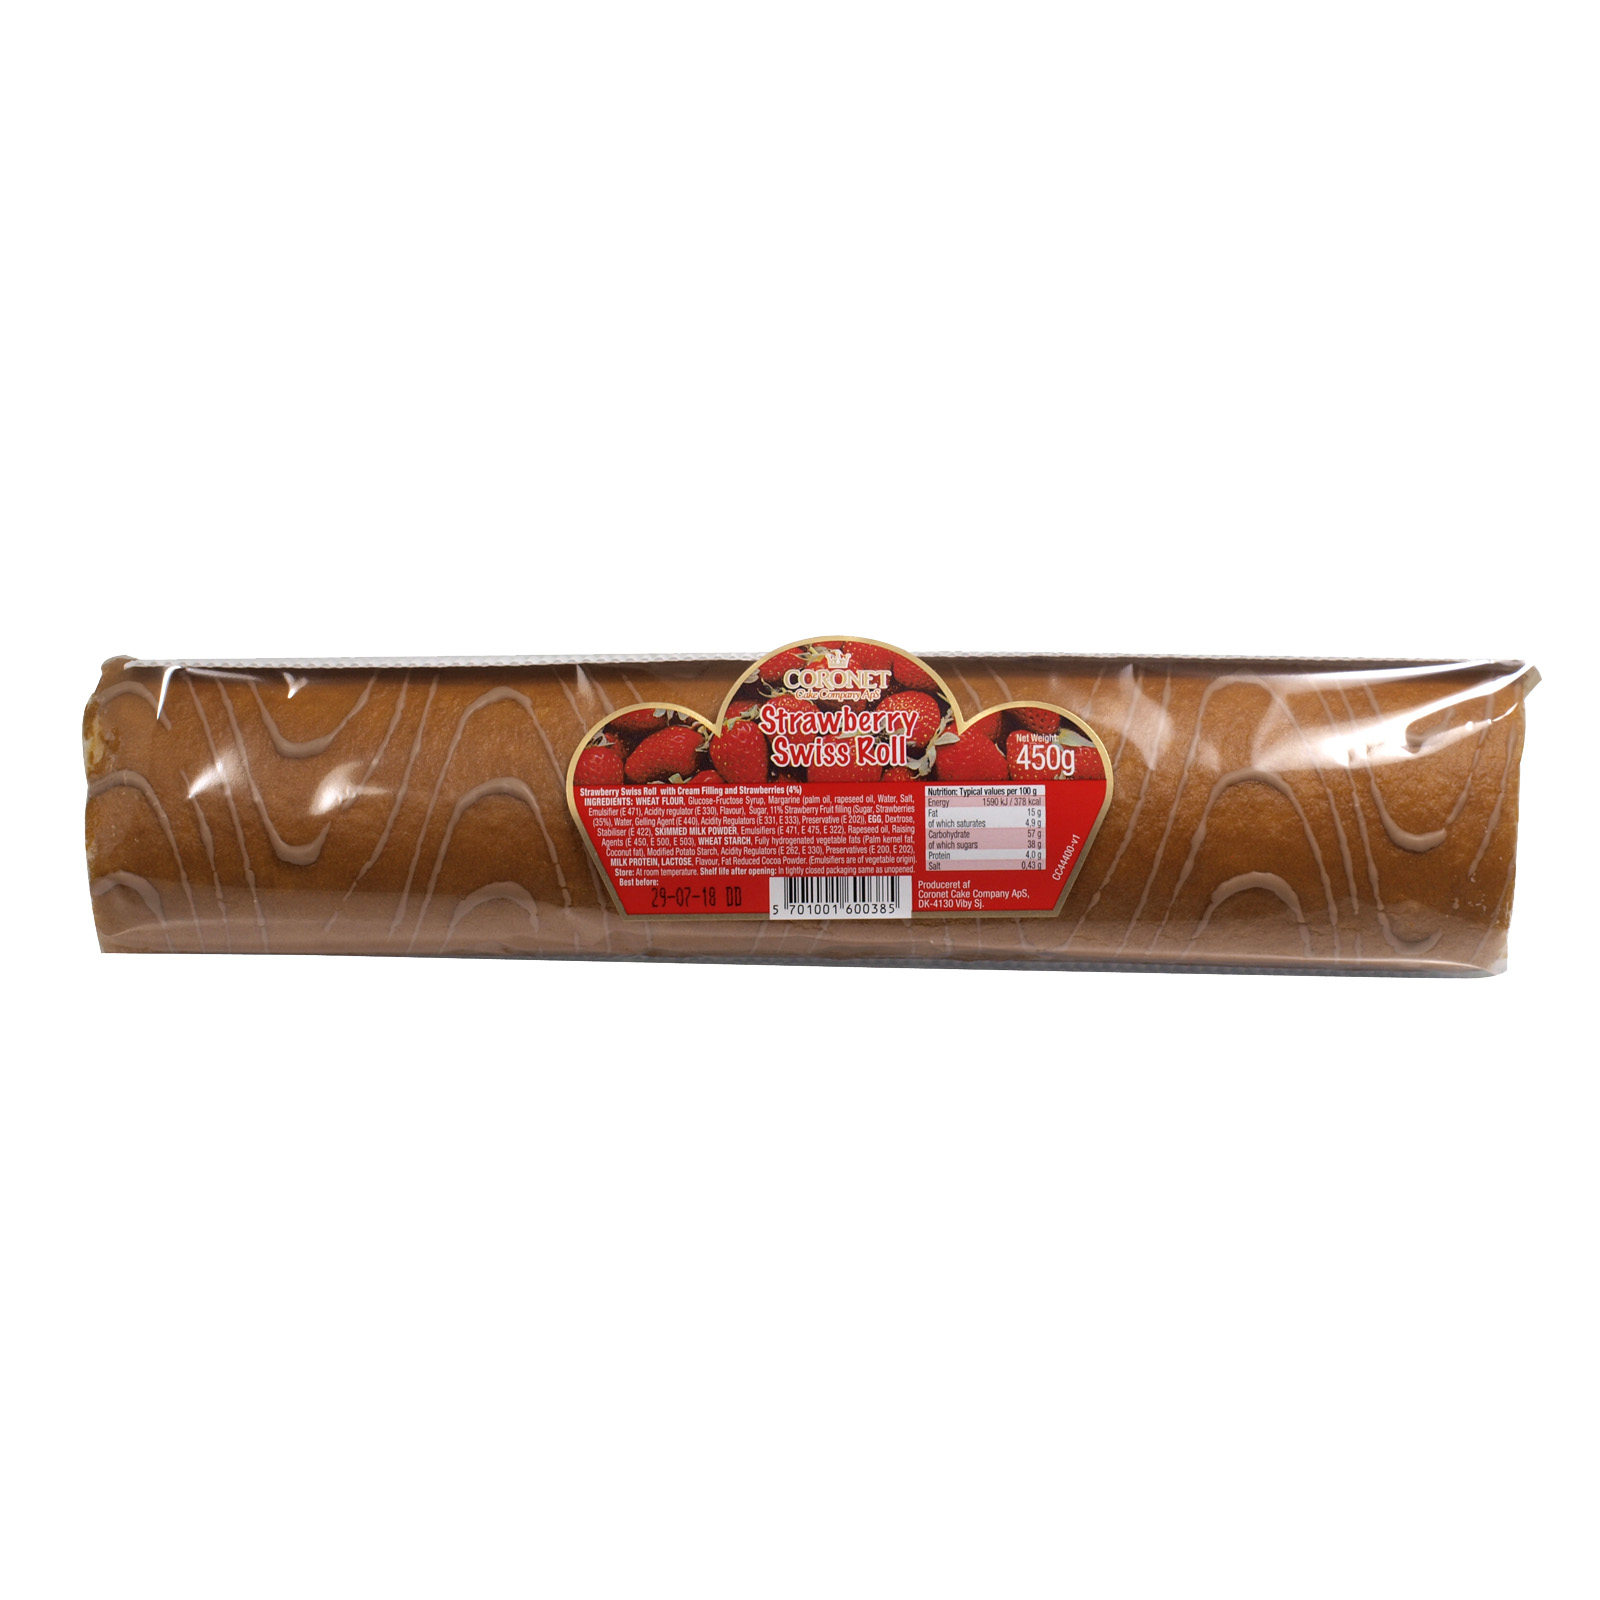 CORONET SWISS ROLL STRAWBERRY X8